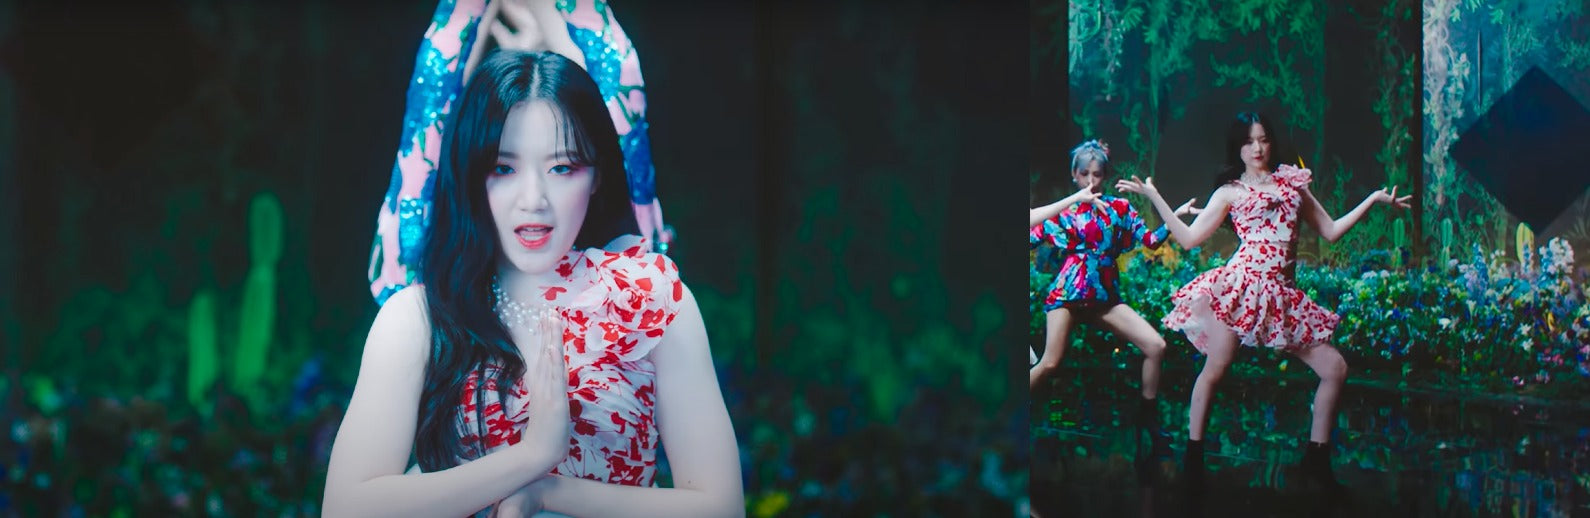 """ic: Shuhua in a two-piece set from Bambah. Featured in (G)I-DLE's music video, """"HWAA."""""""